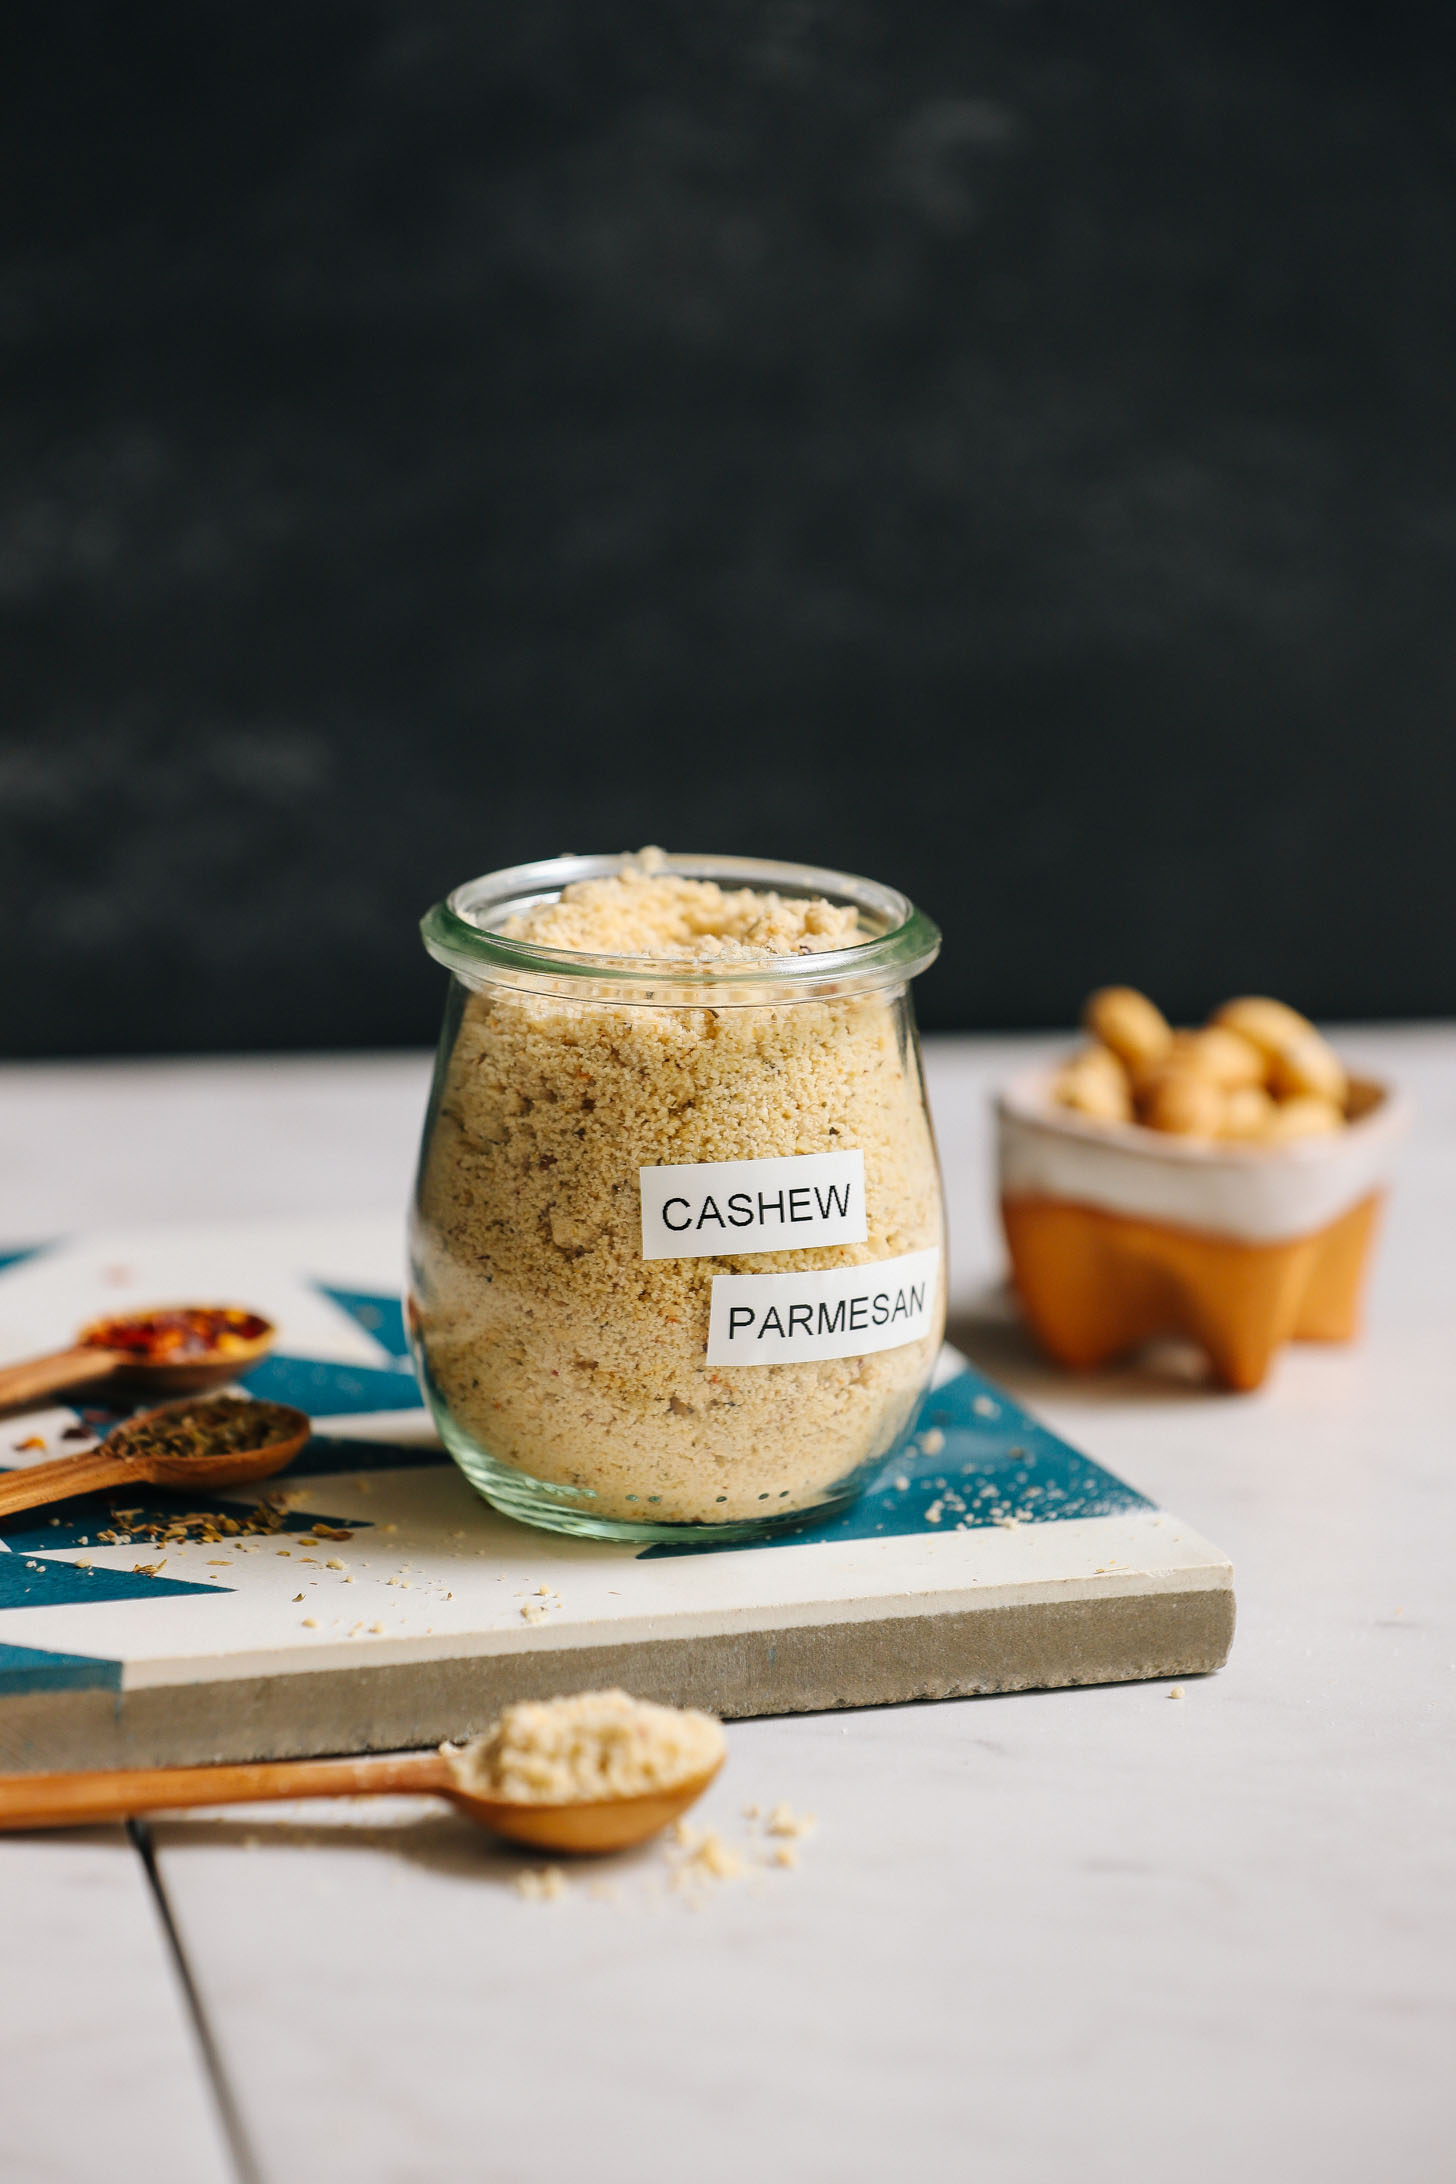 Jar of yeast-free, dairy-free, homemade Parmesan cheese beside ingredients used to make it